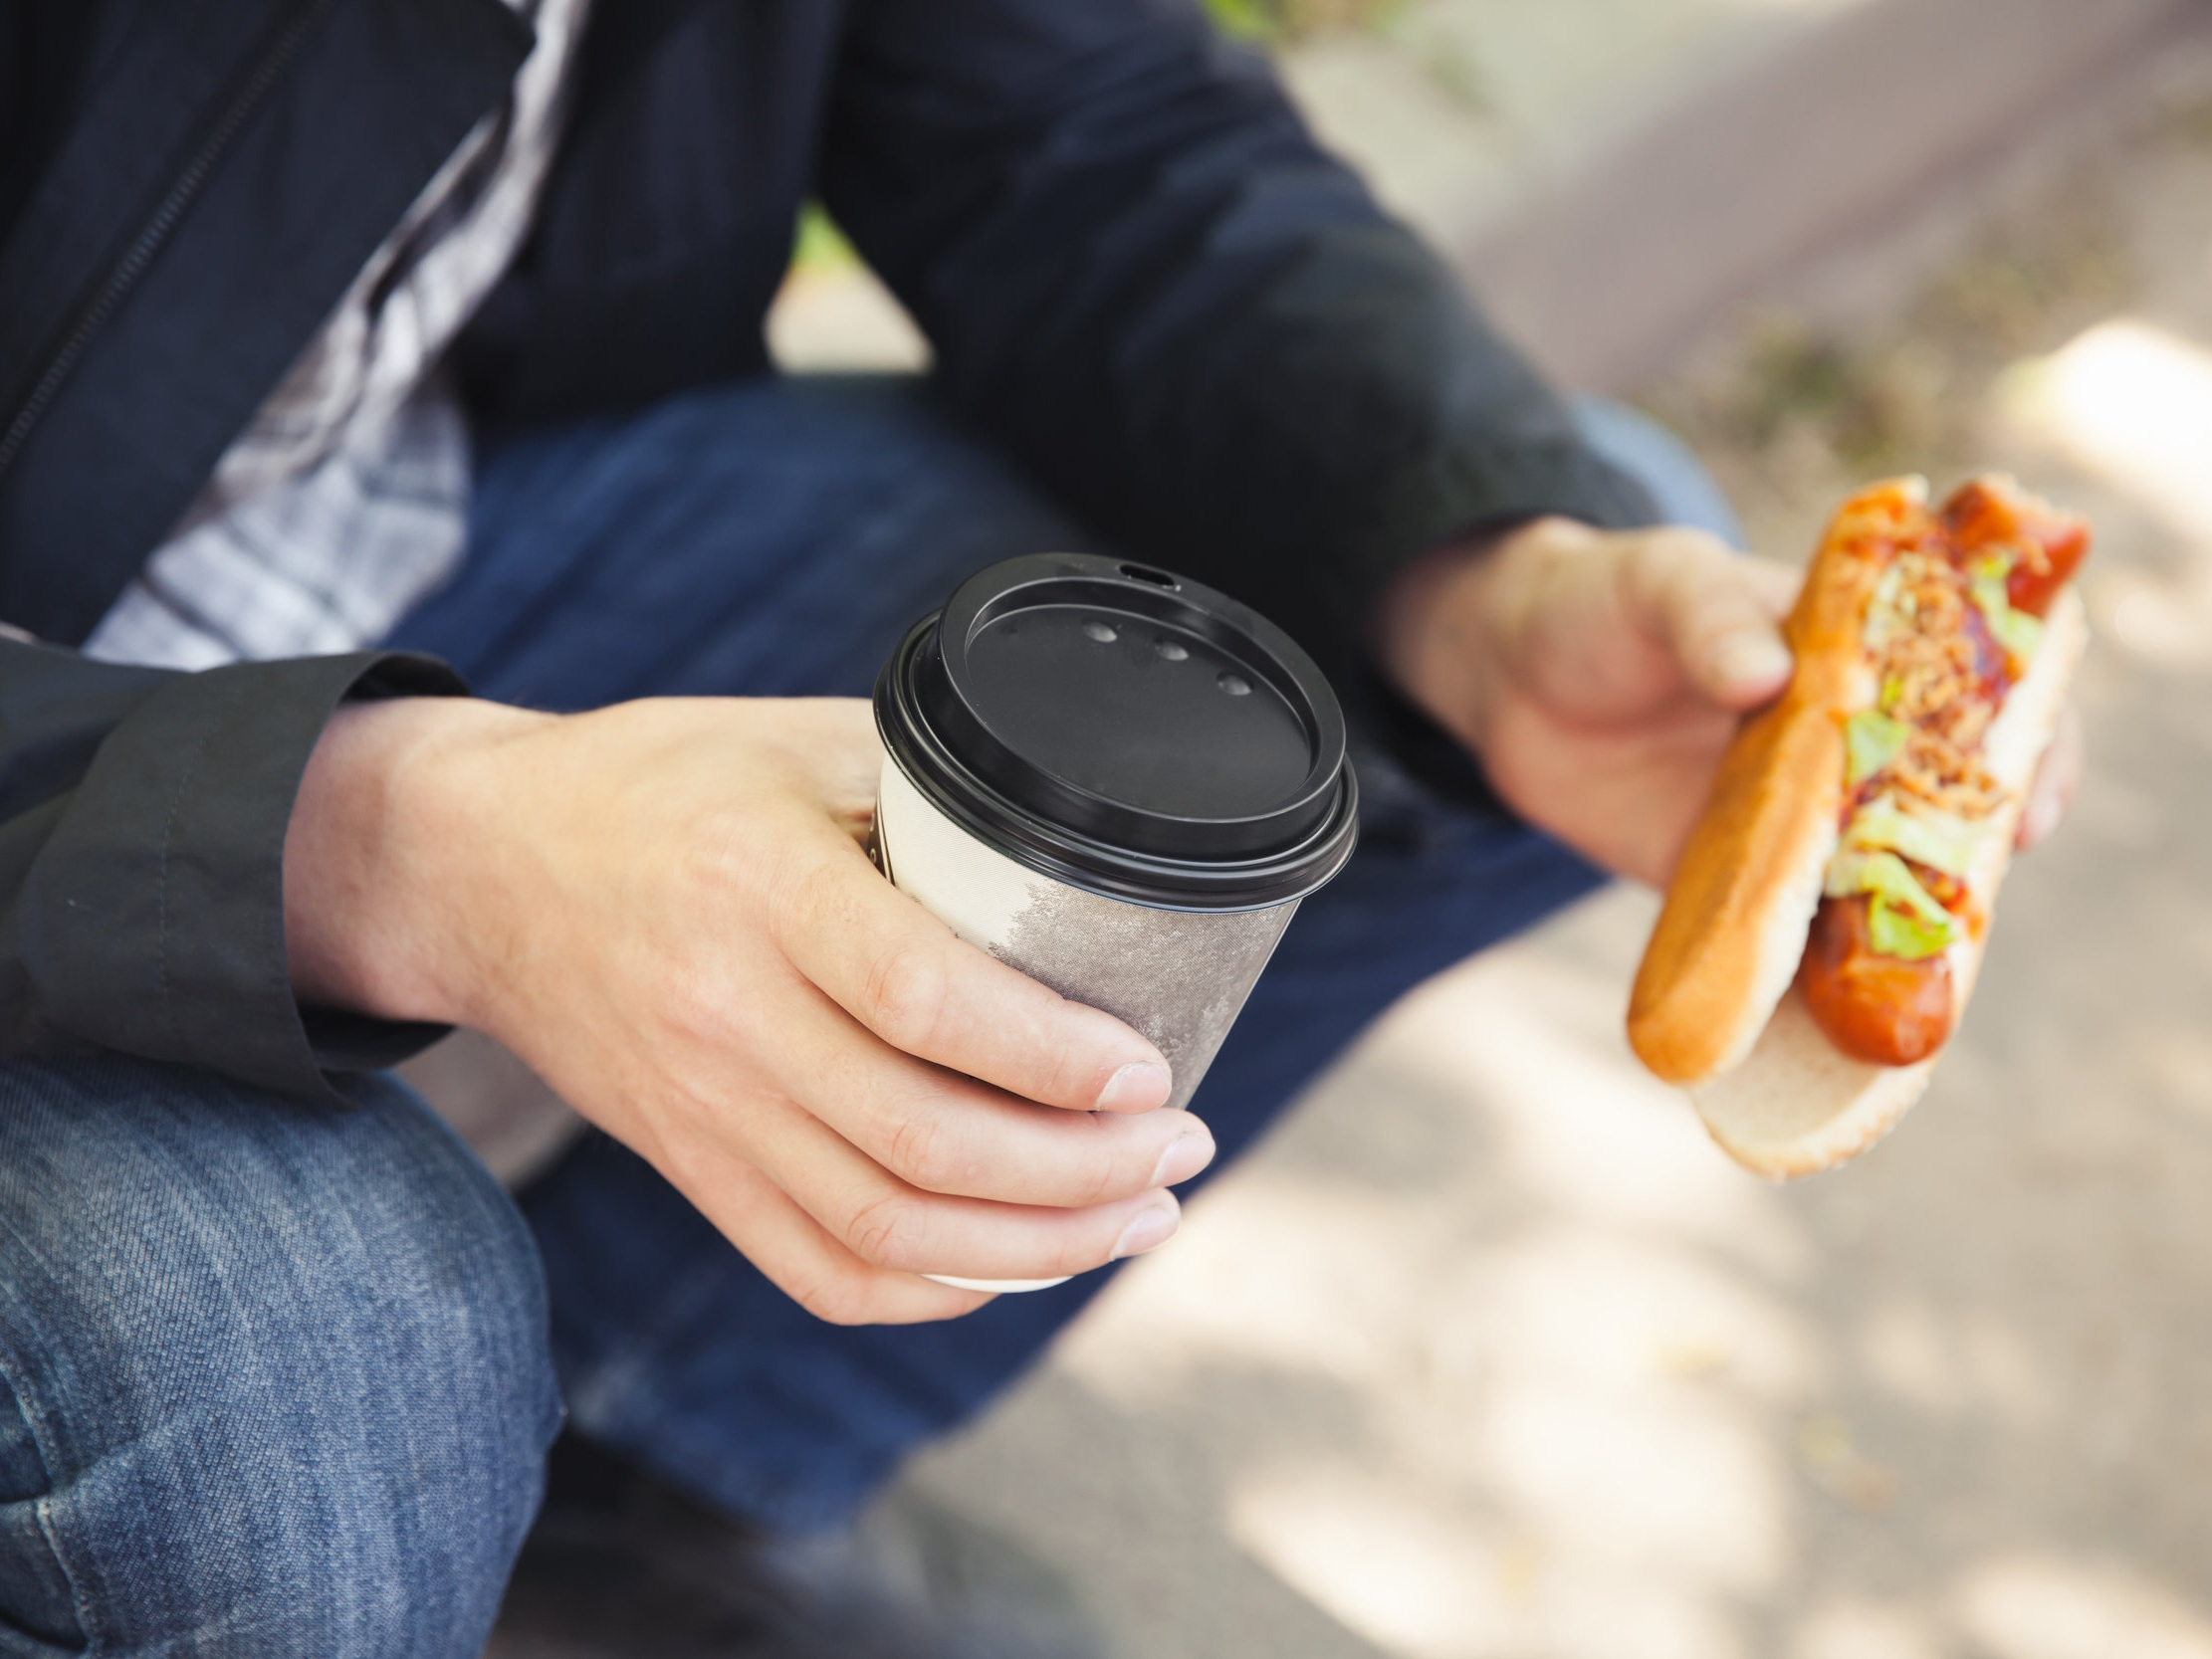 Keep hold of your plastic, cans and coffee cups and make sure they're empty - Leftover food and liquid could make a whole batch go to waste.